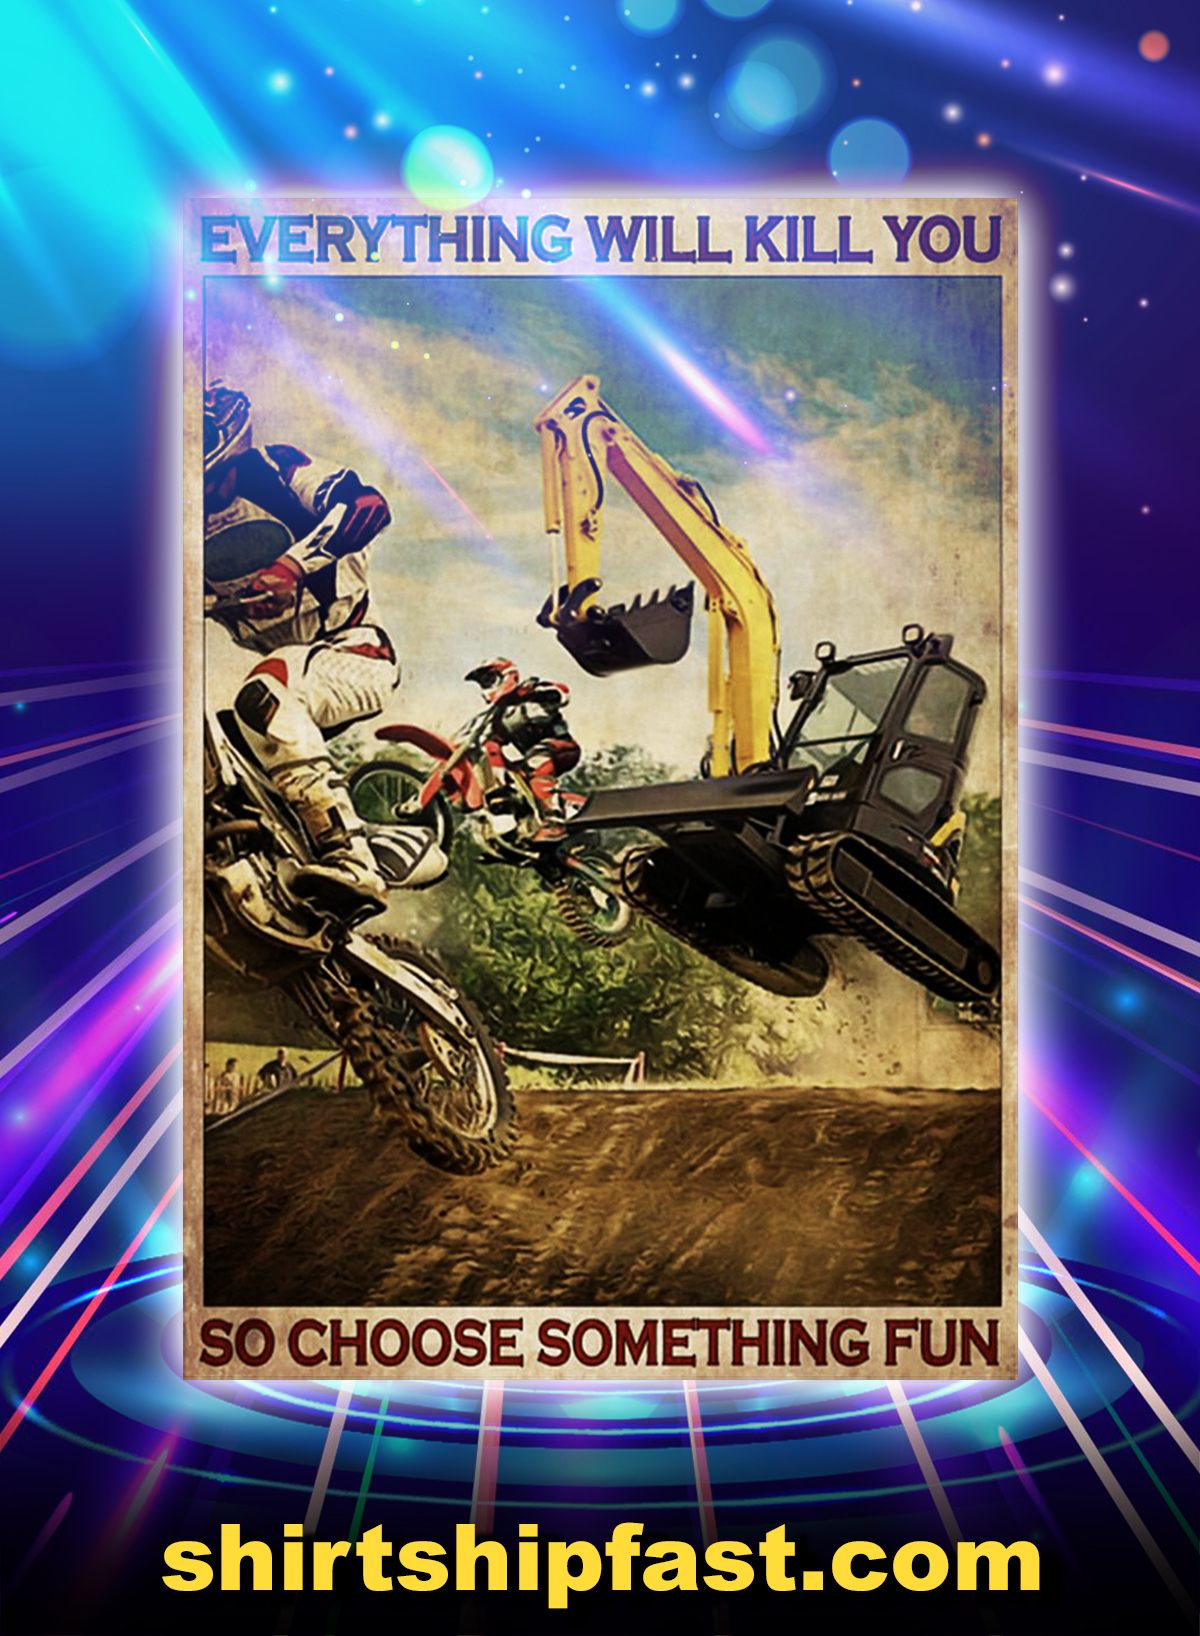 Motocross excavator everything will kill you so choose something fun poster - A1